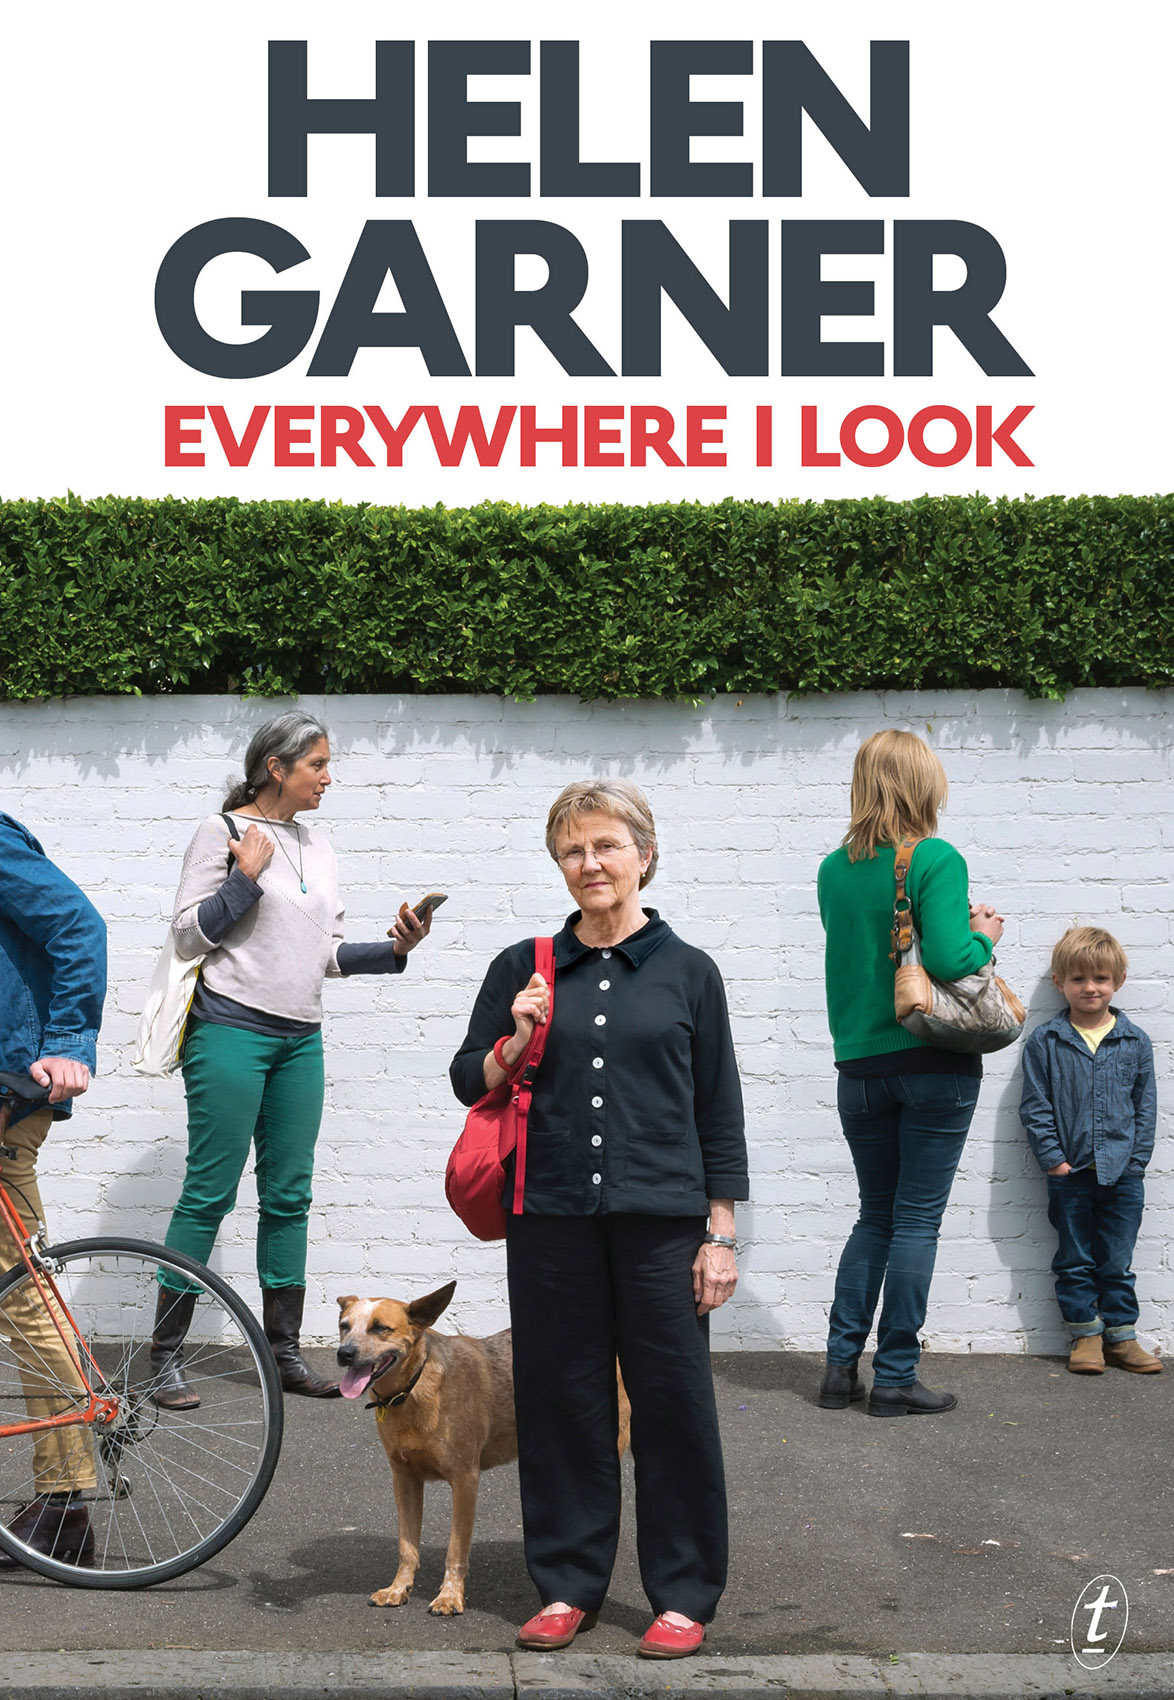 Everywhere I Look, by Helen Garner